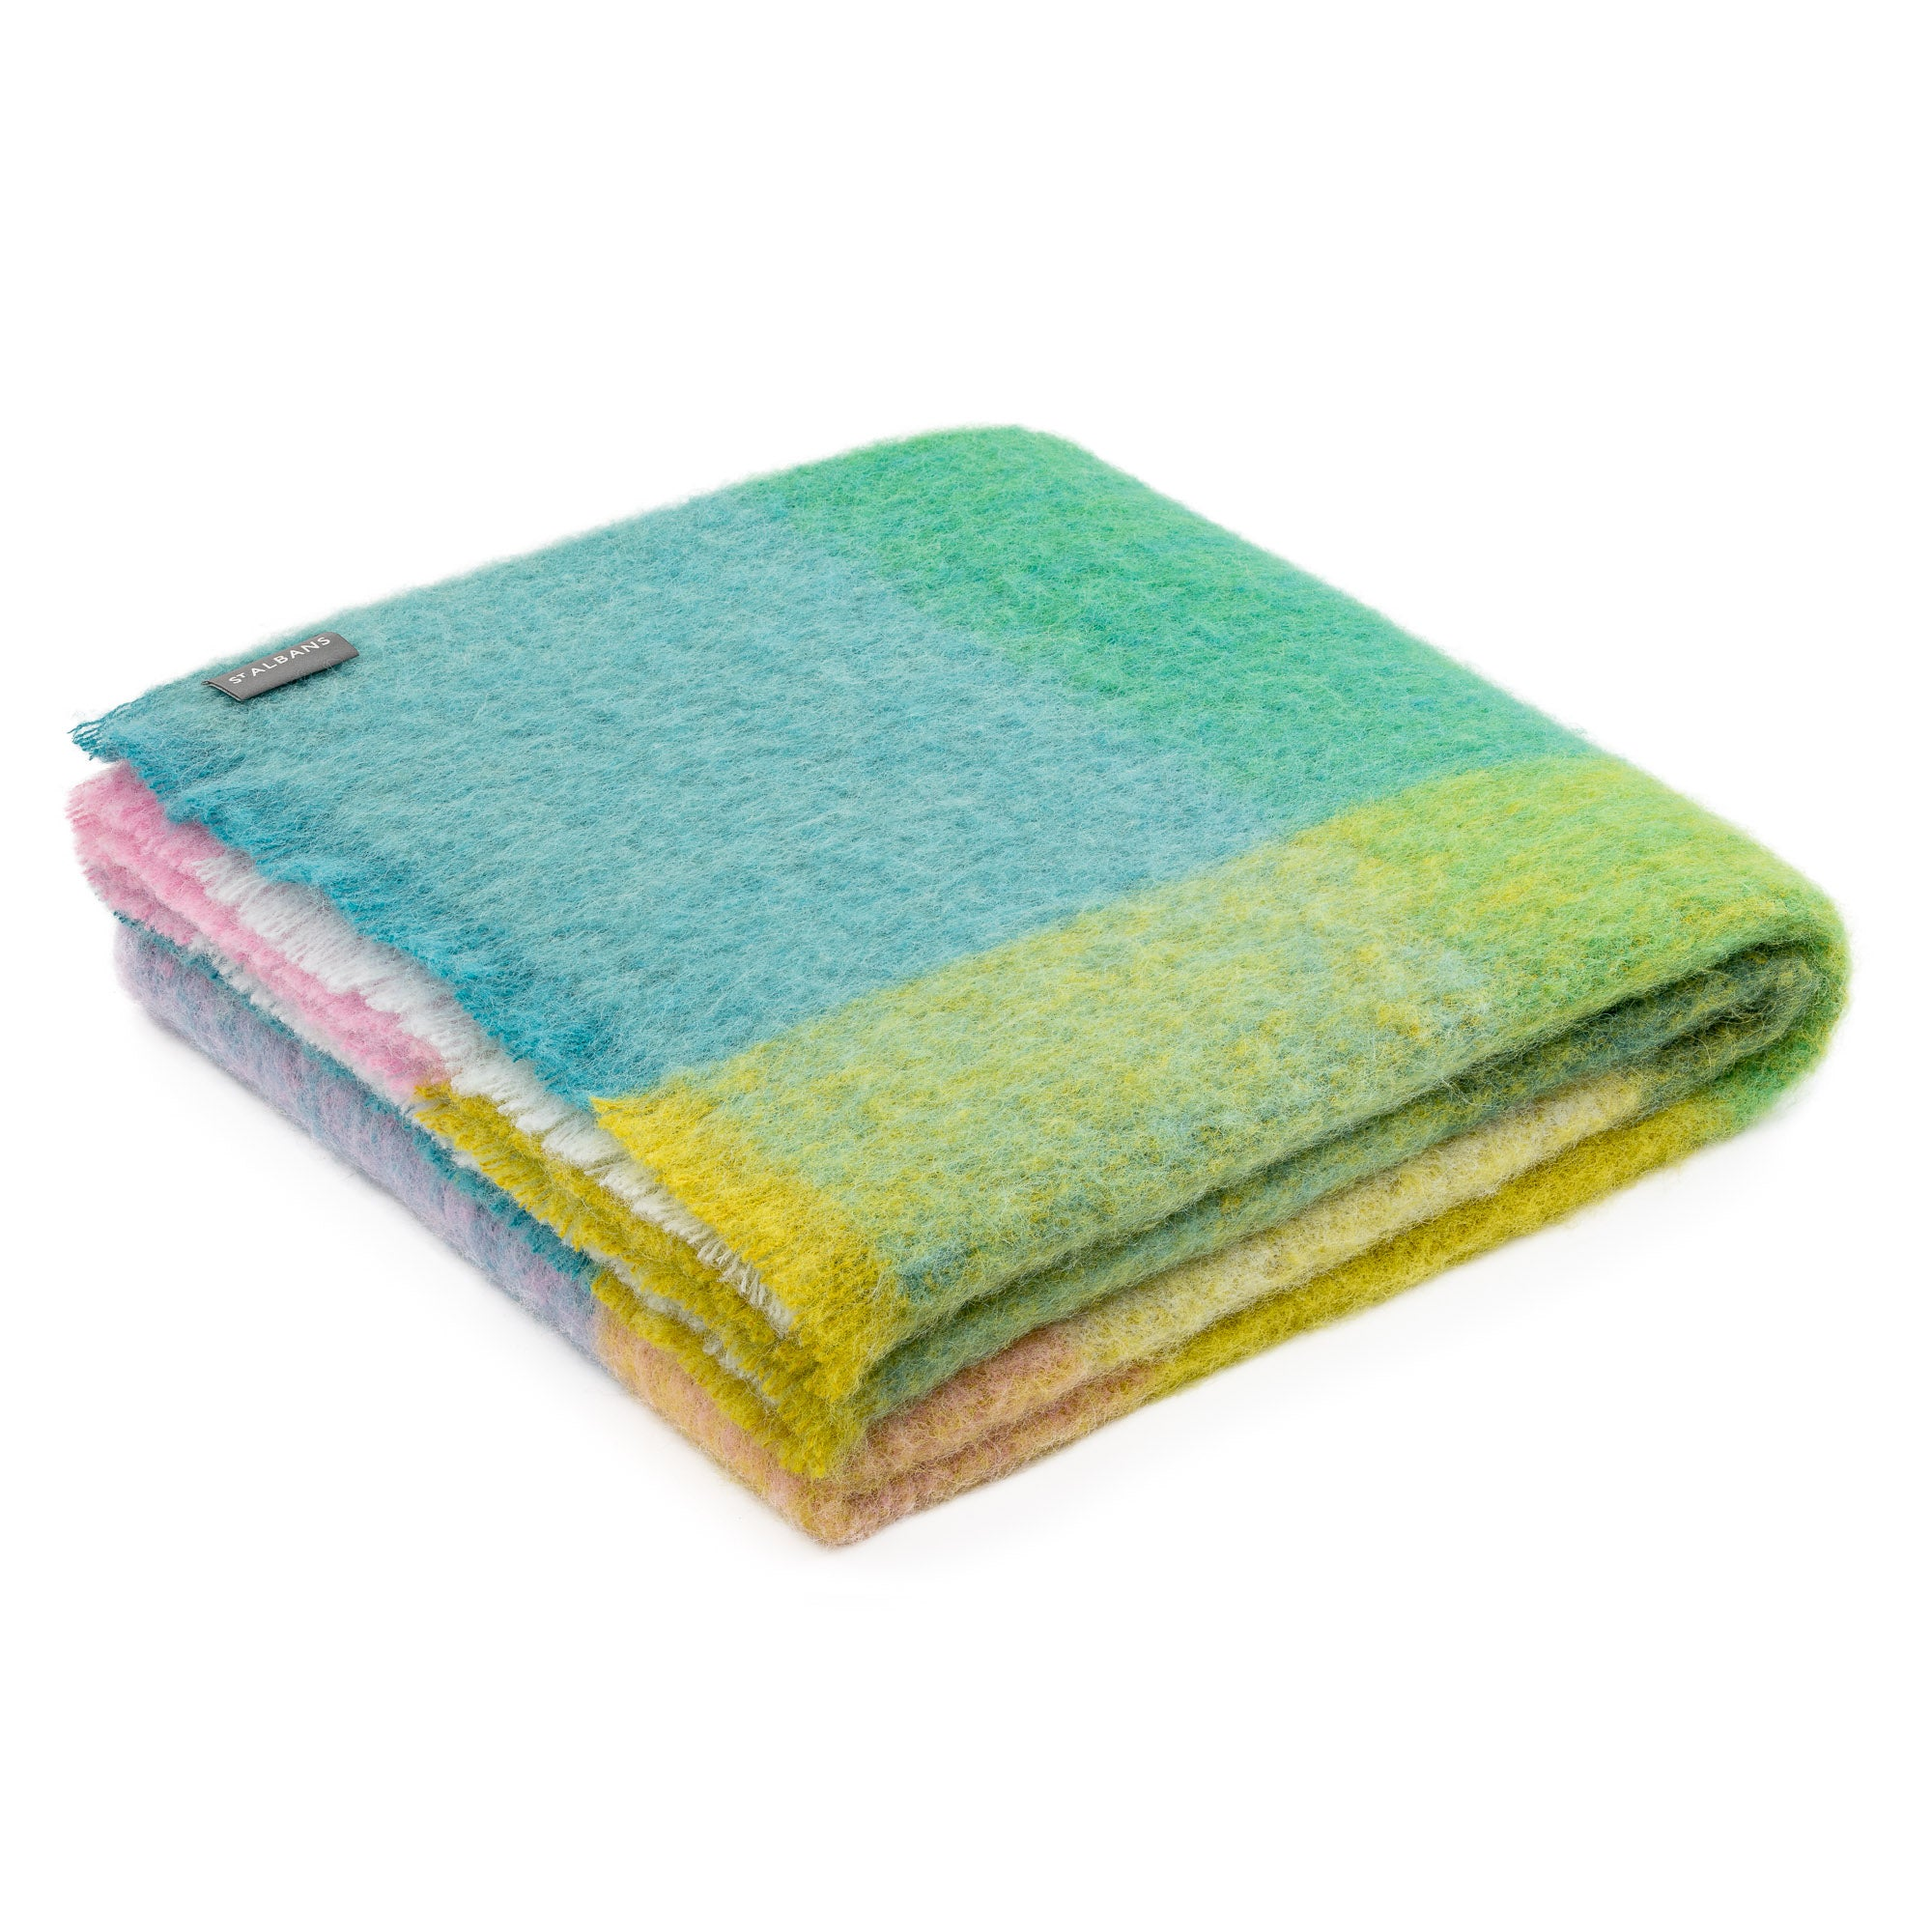 Alpaca Sassy St Albans Throw